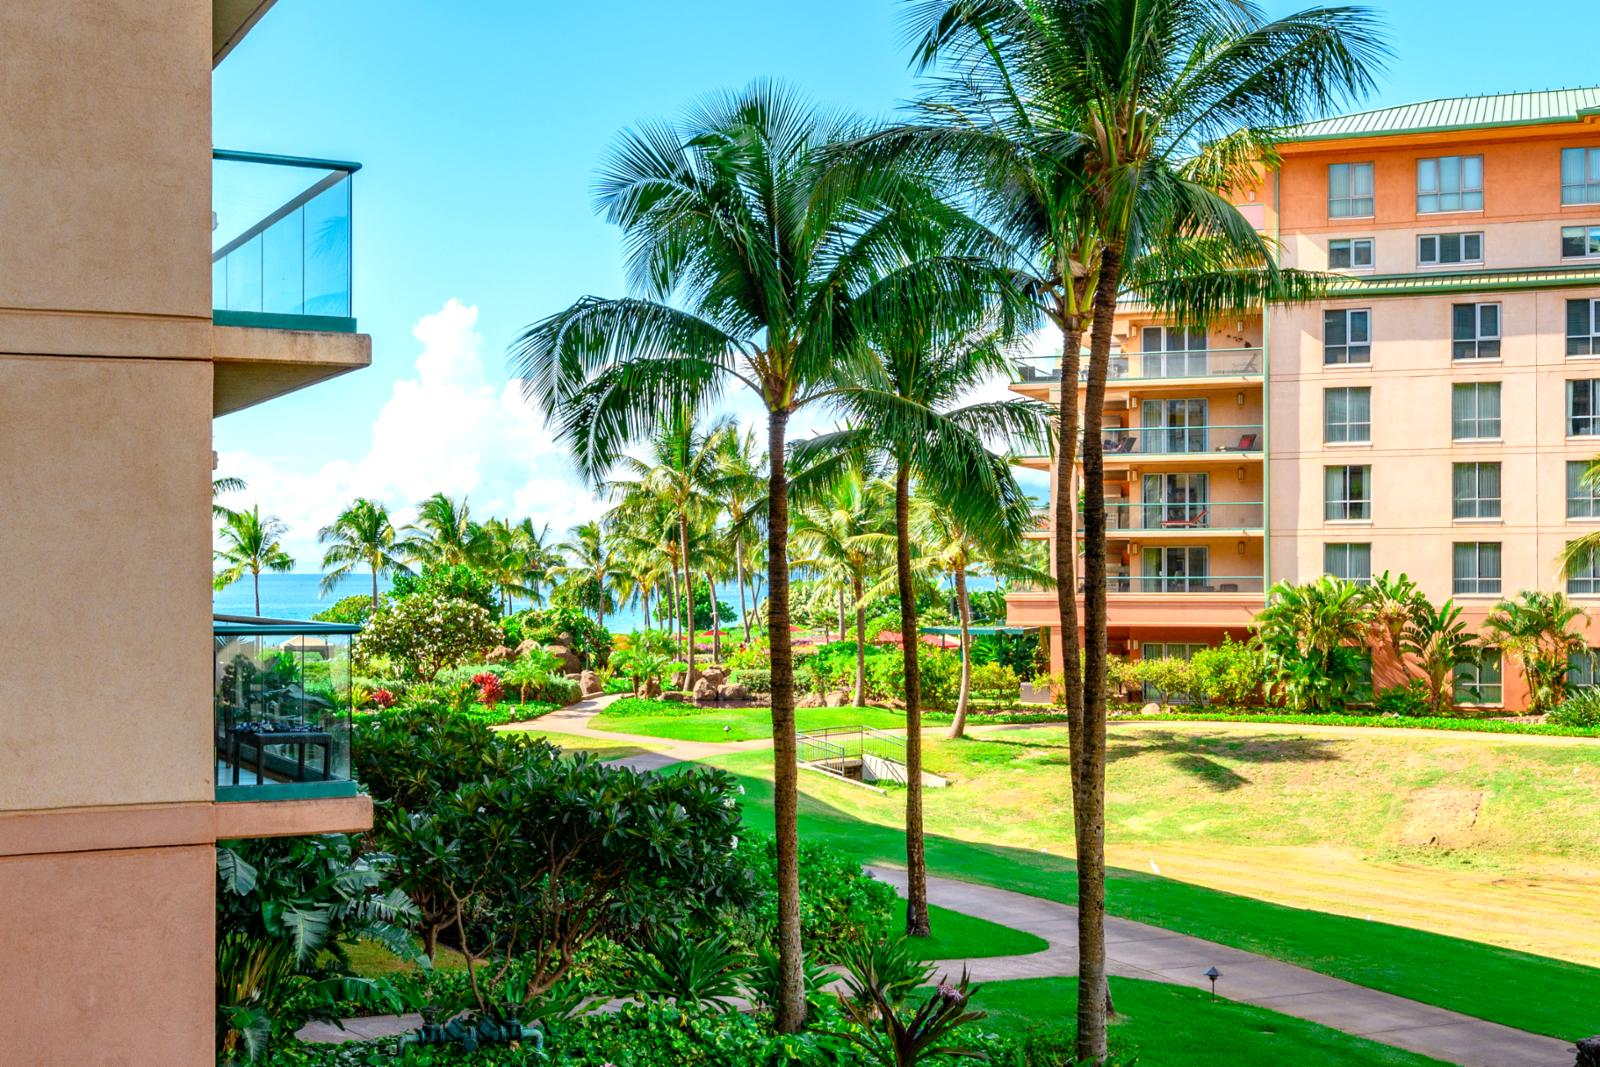 Partial ocean views from the lanai of Honua Kai unit Hokulani 238